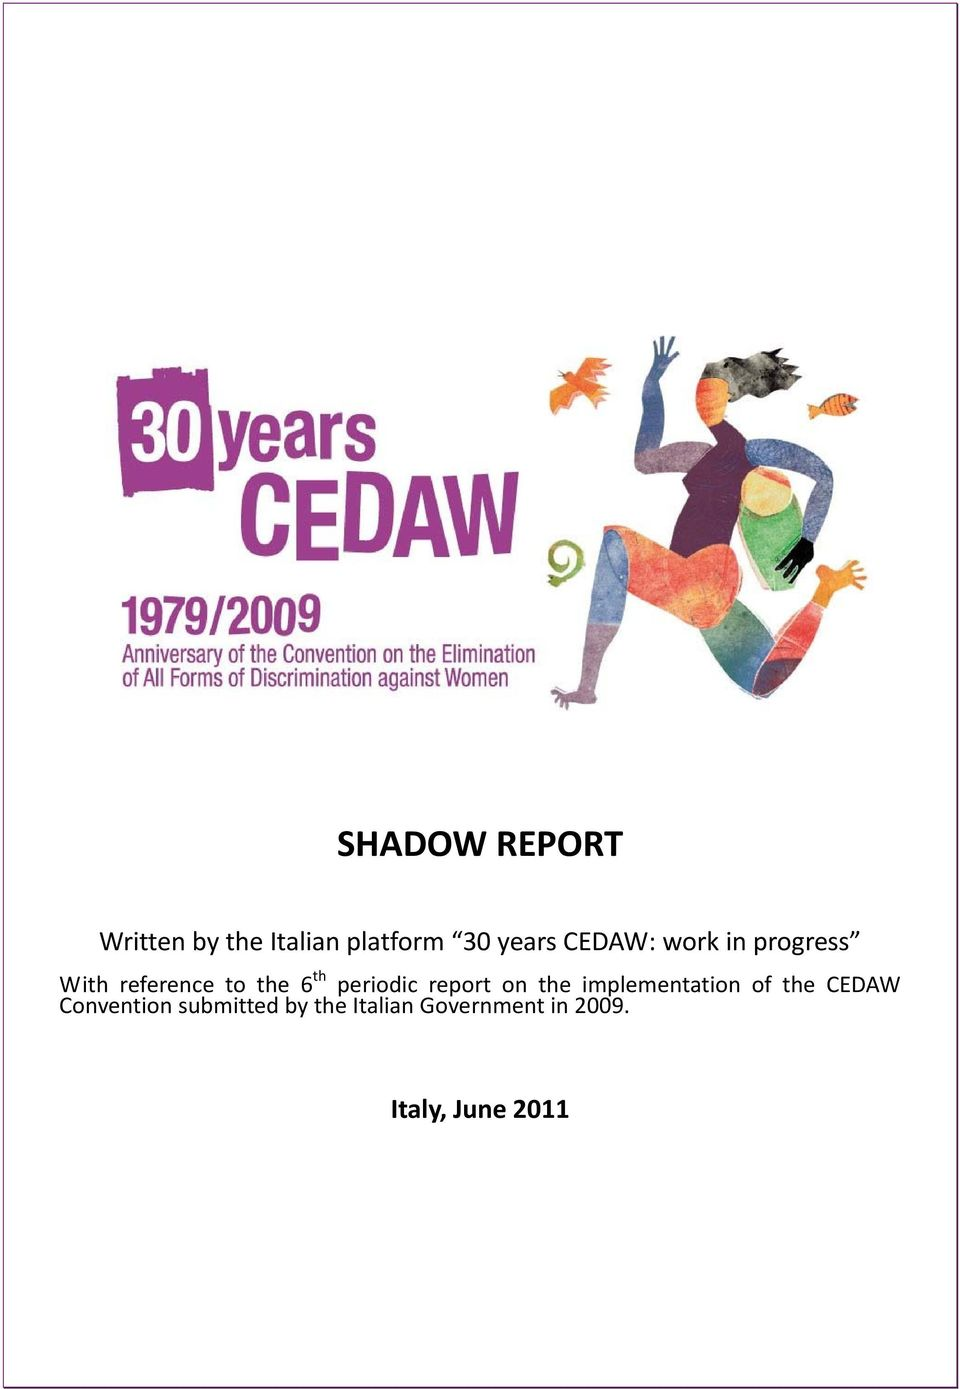 periodic report on the implementation of the CEDAW